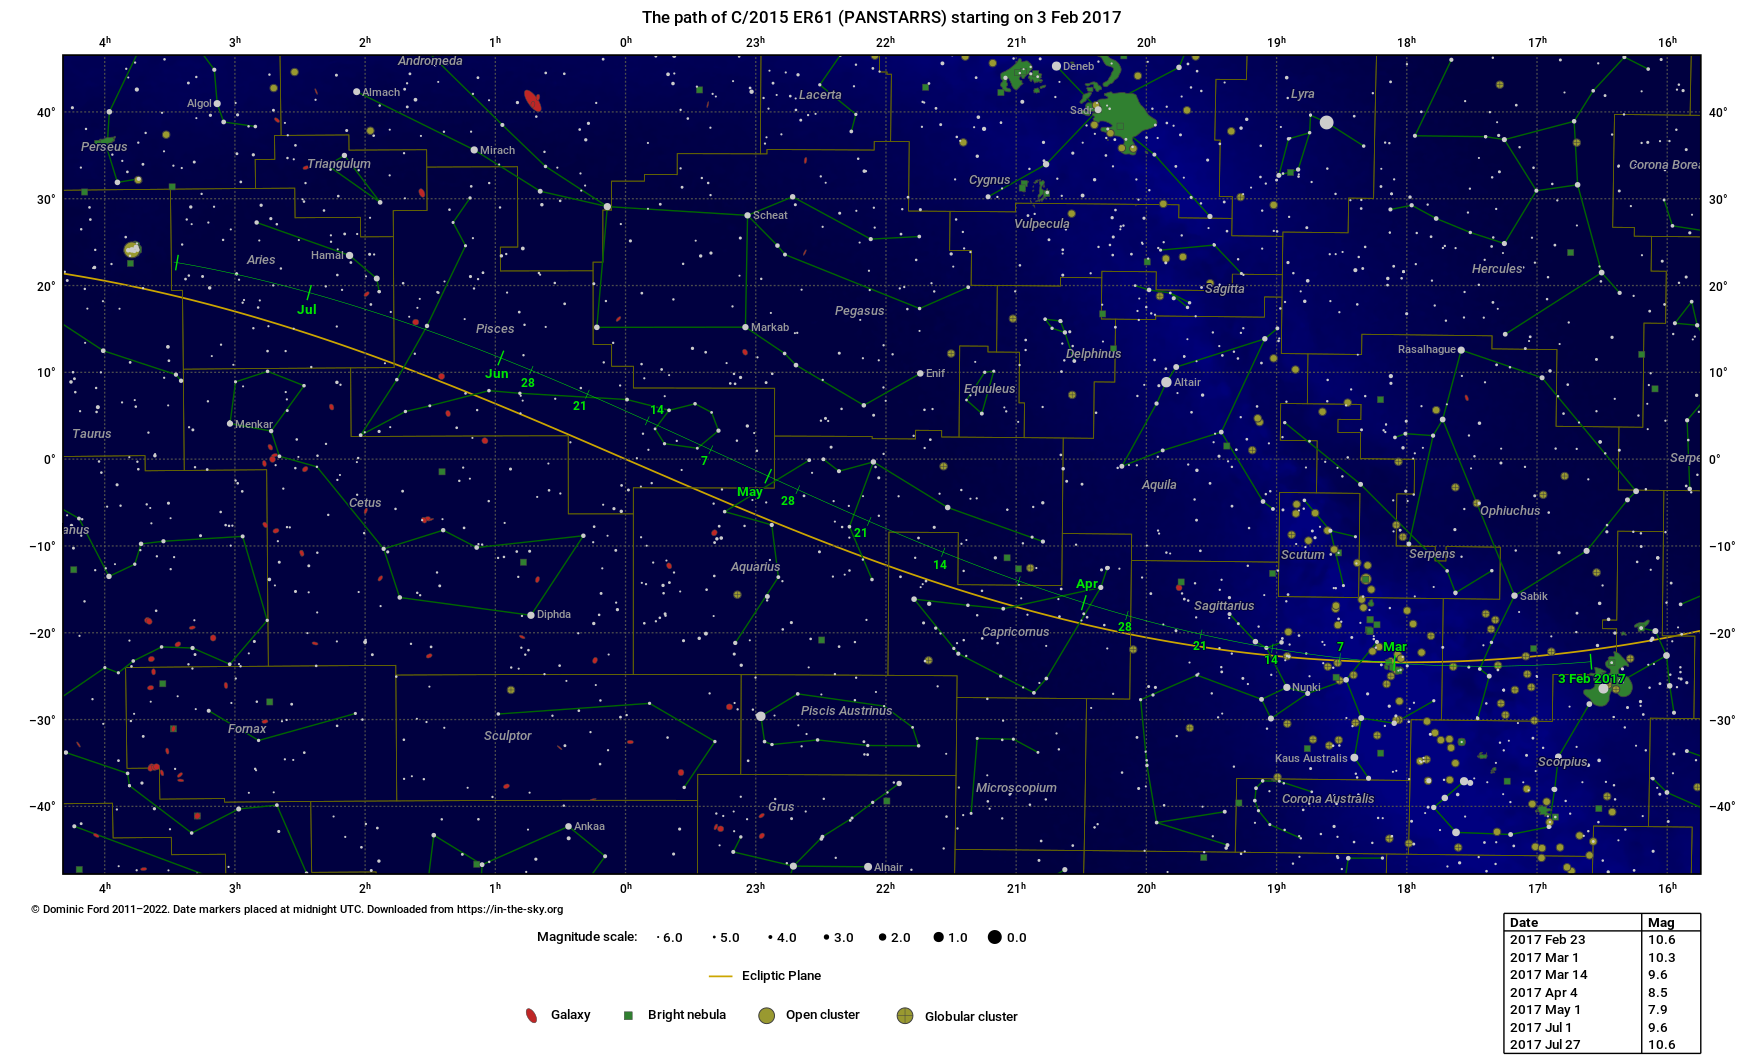 The path traced across the sky by C/2015 ER61 (PANSTARRS)